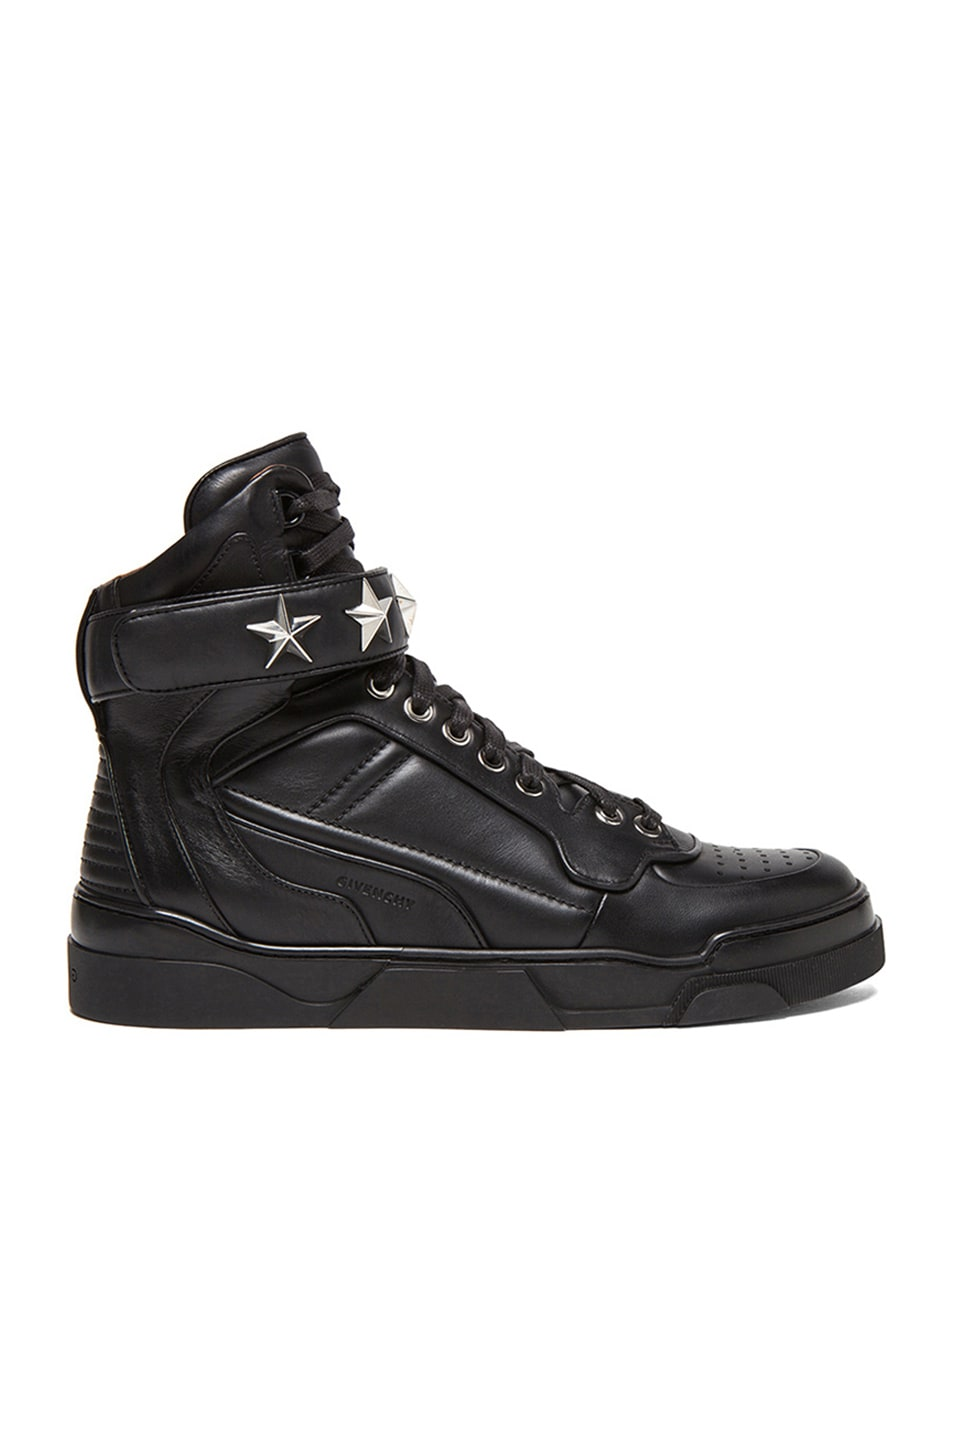 Image 1 of GIVENCHY Tyson High Top Leather Sneakers in Black